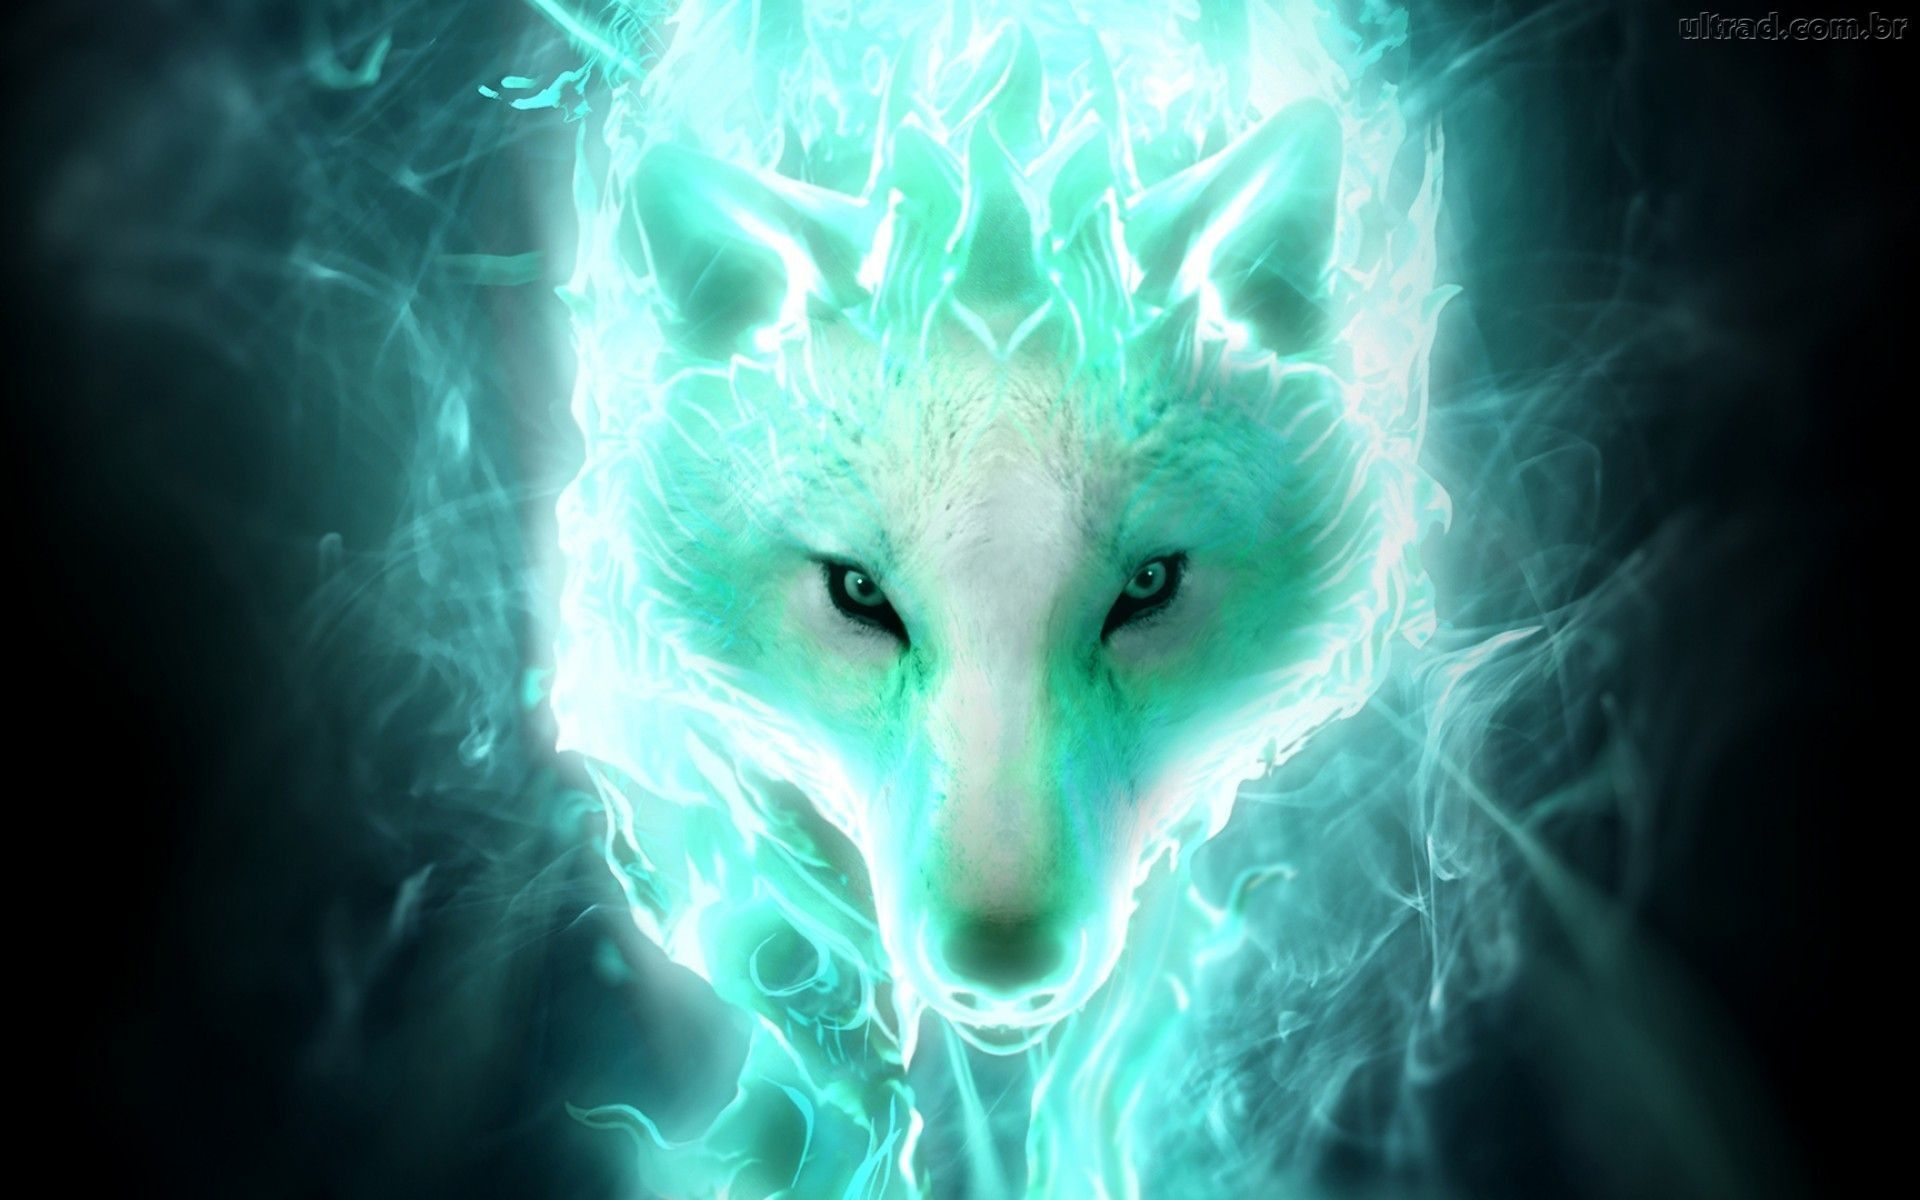 1920x1200 Fire wolf wallpaper - crazywidow.info